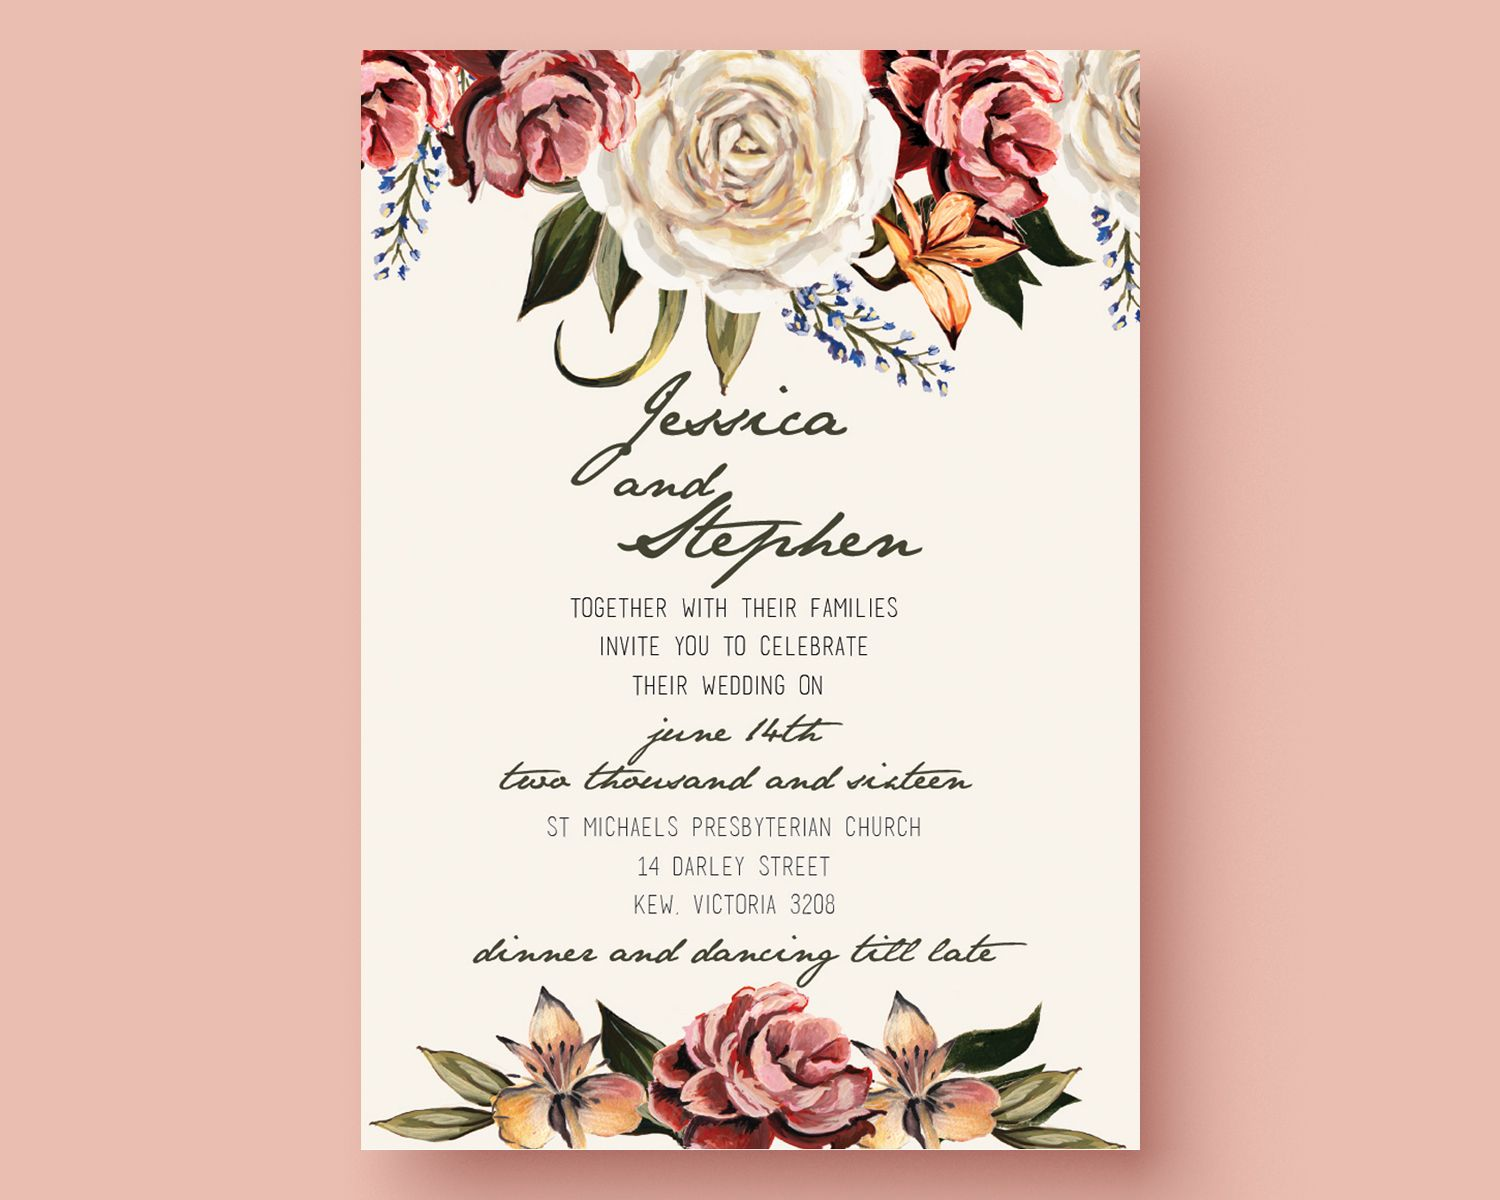 Get The Template Free Download This Is An Adobe Illustrator File - Wedding invitation templates: email wedding invitation templates free download